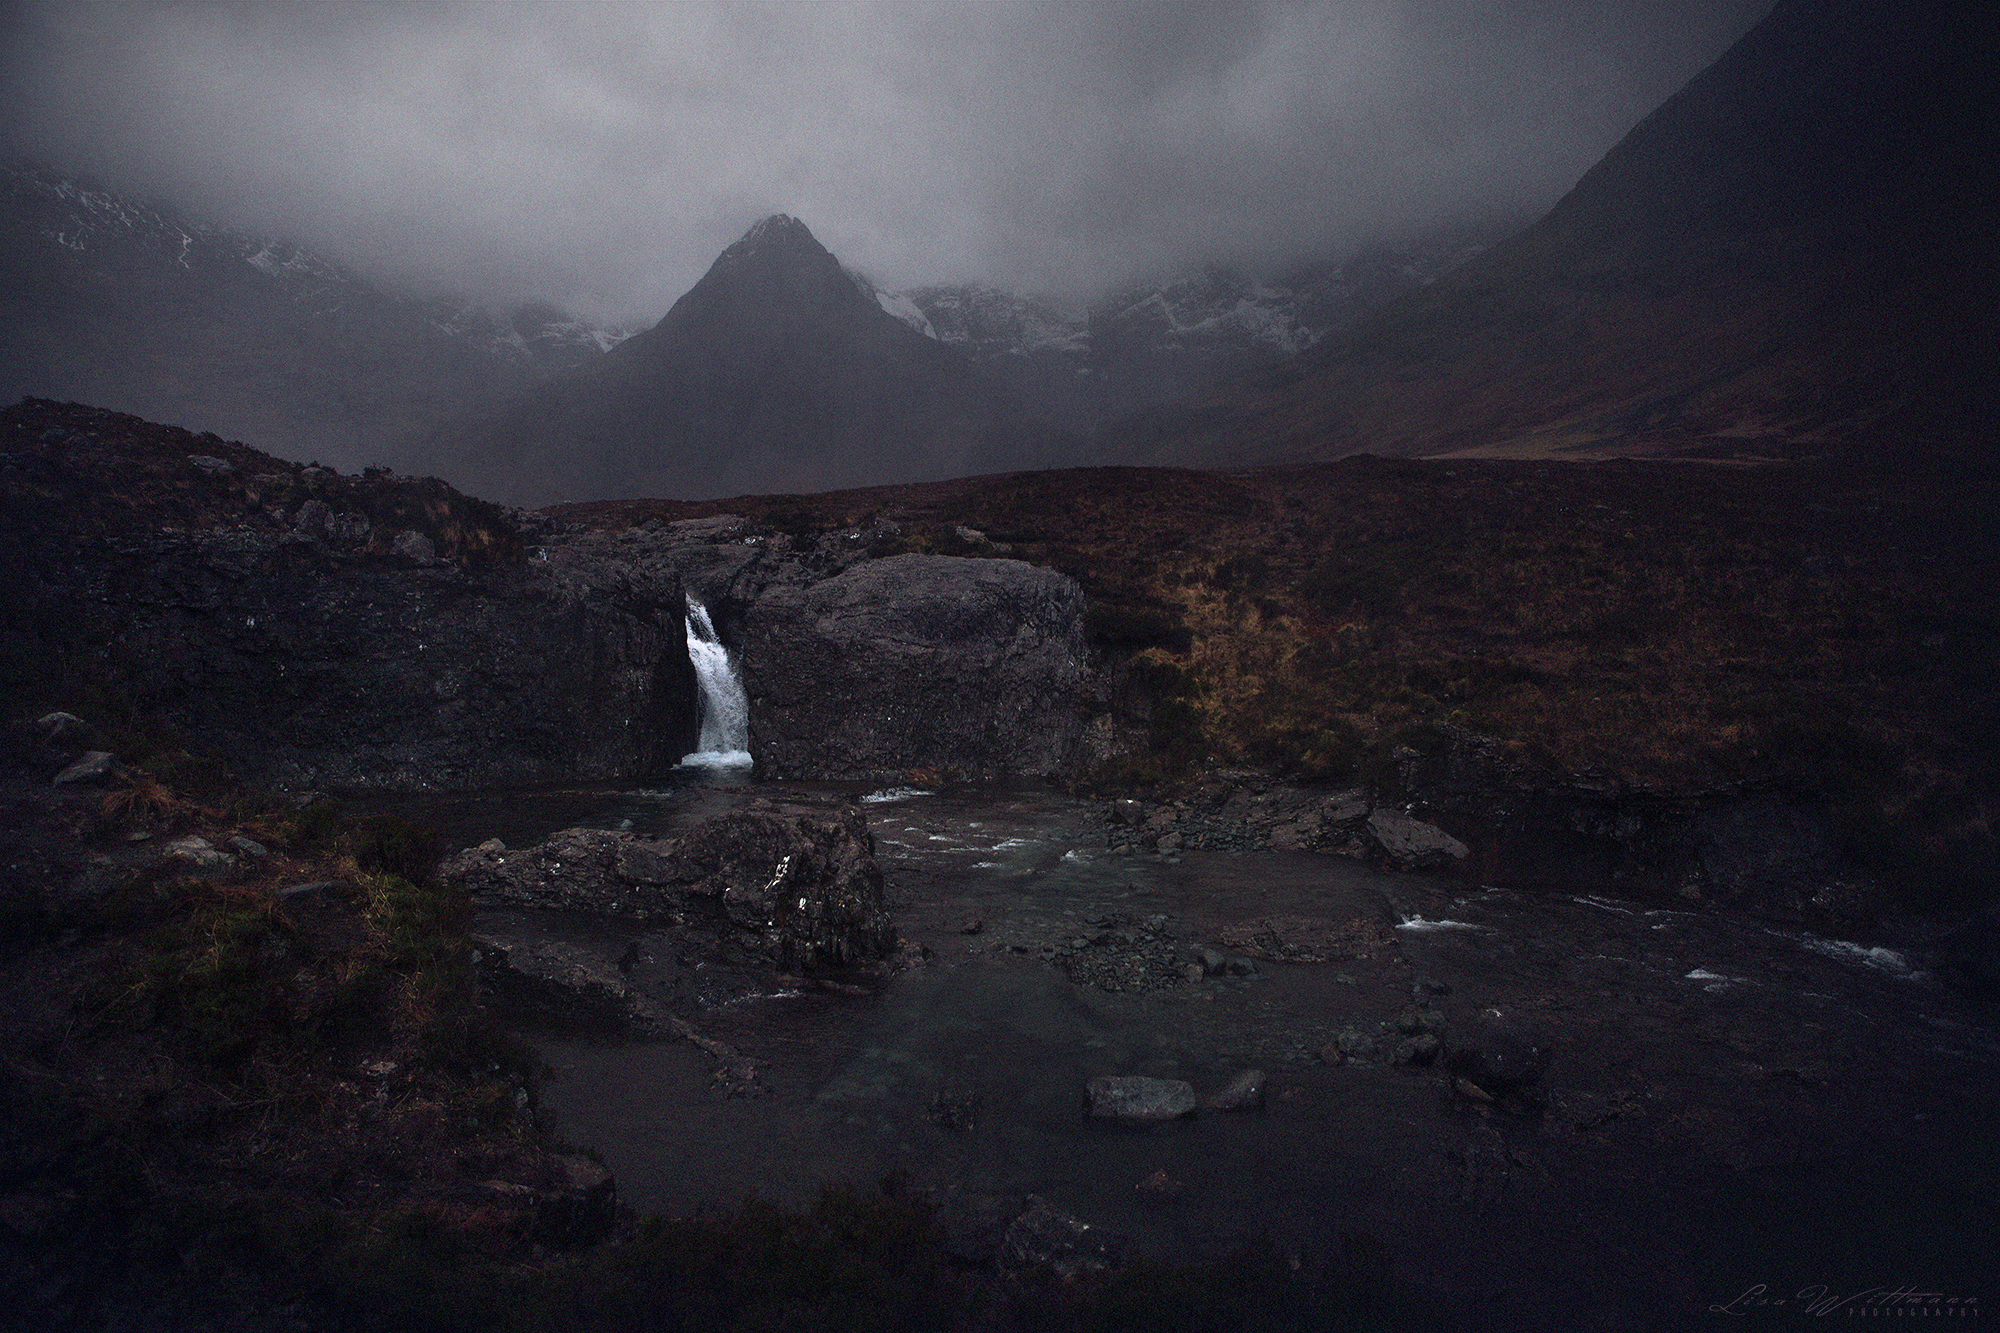 scotland_highlands_lisa_wittmann_photography_mountains_fog_water_beautiful_moody_canon_travel_paradise_fairytale_waterfall